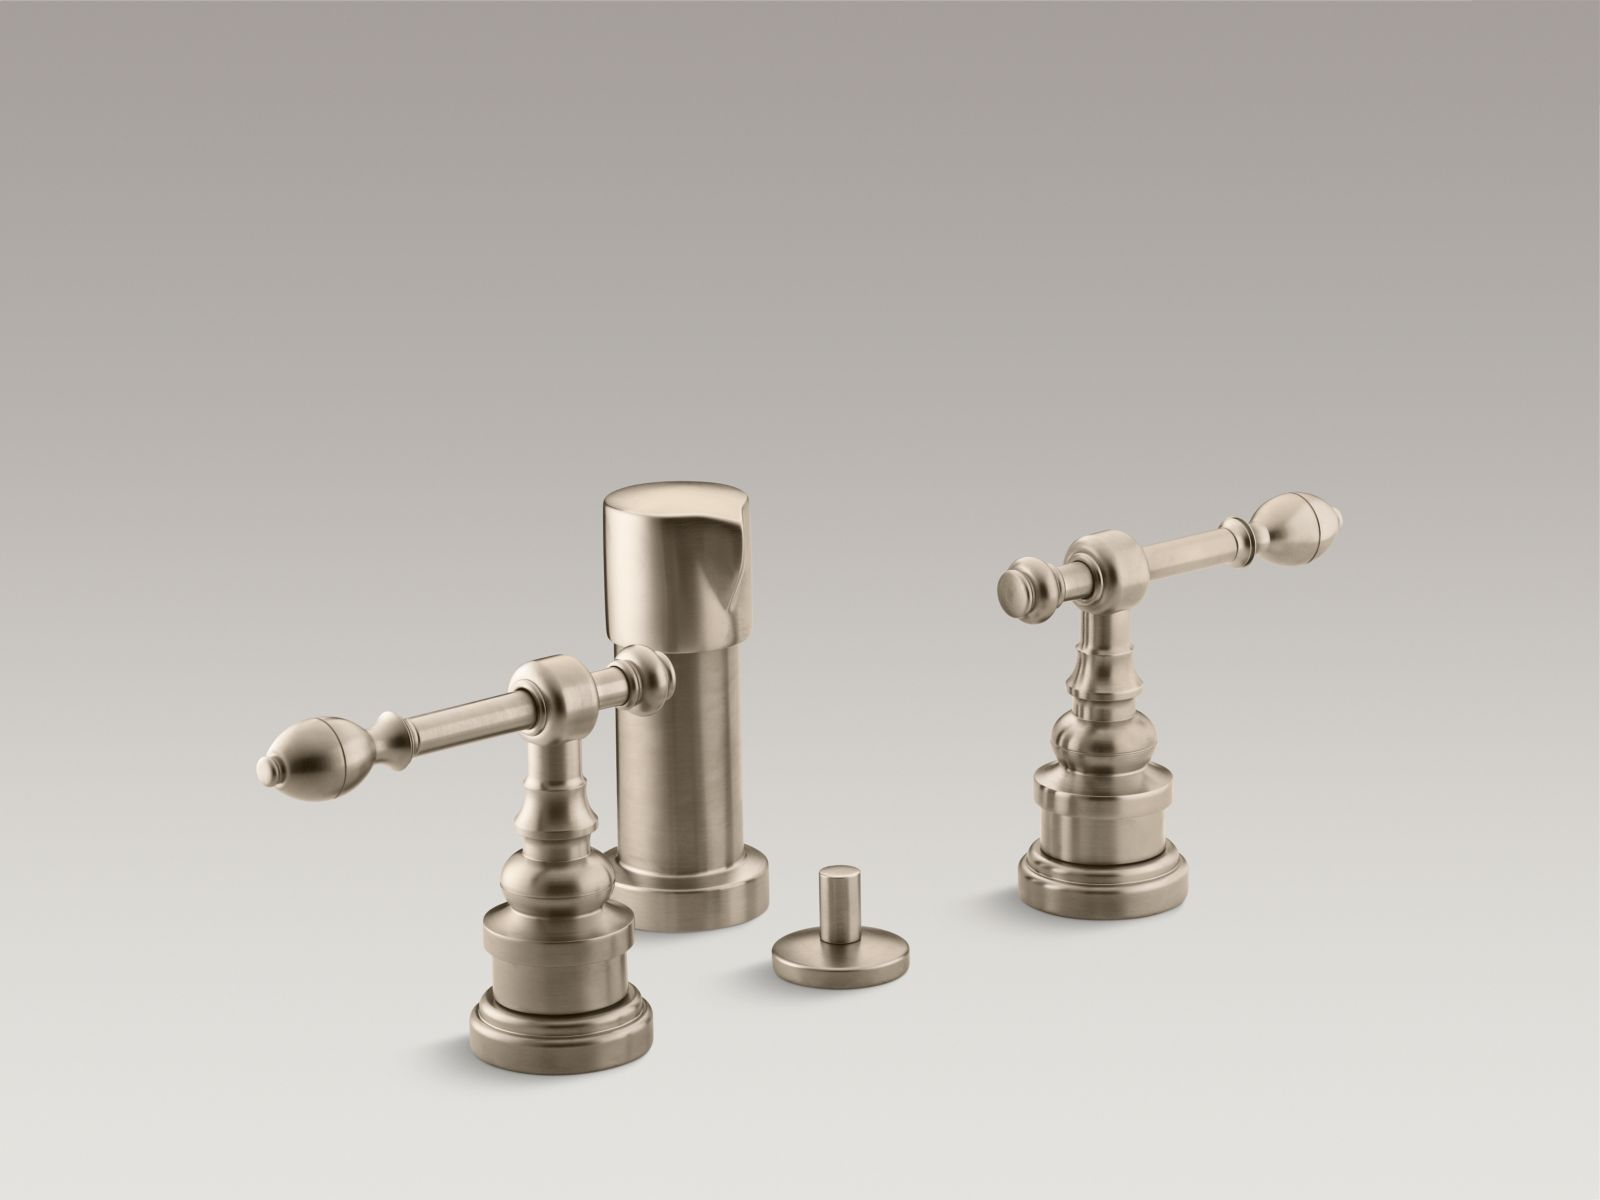 Kohler K-6814-4-BV IV Georges Brass Vertical Spray Bidet Faucet with Lever Handles Vibrant Brushed Bronze